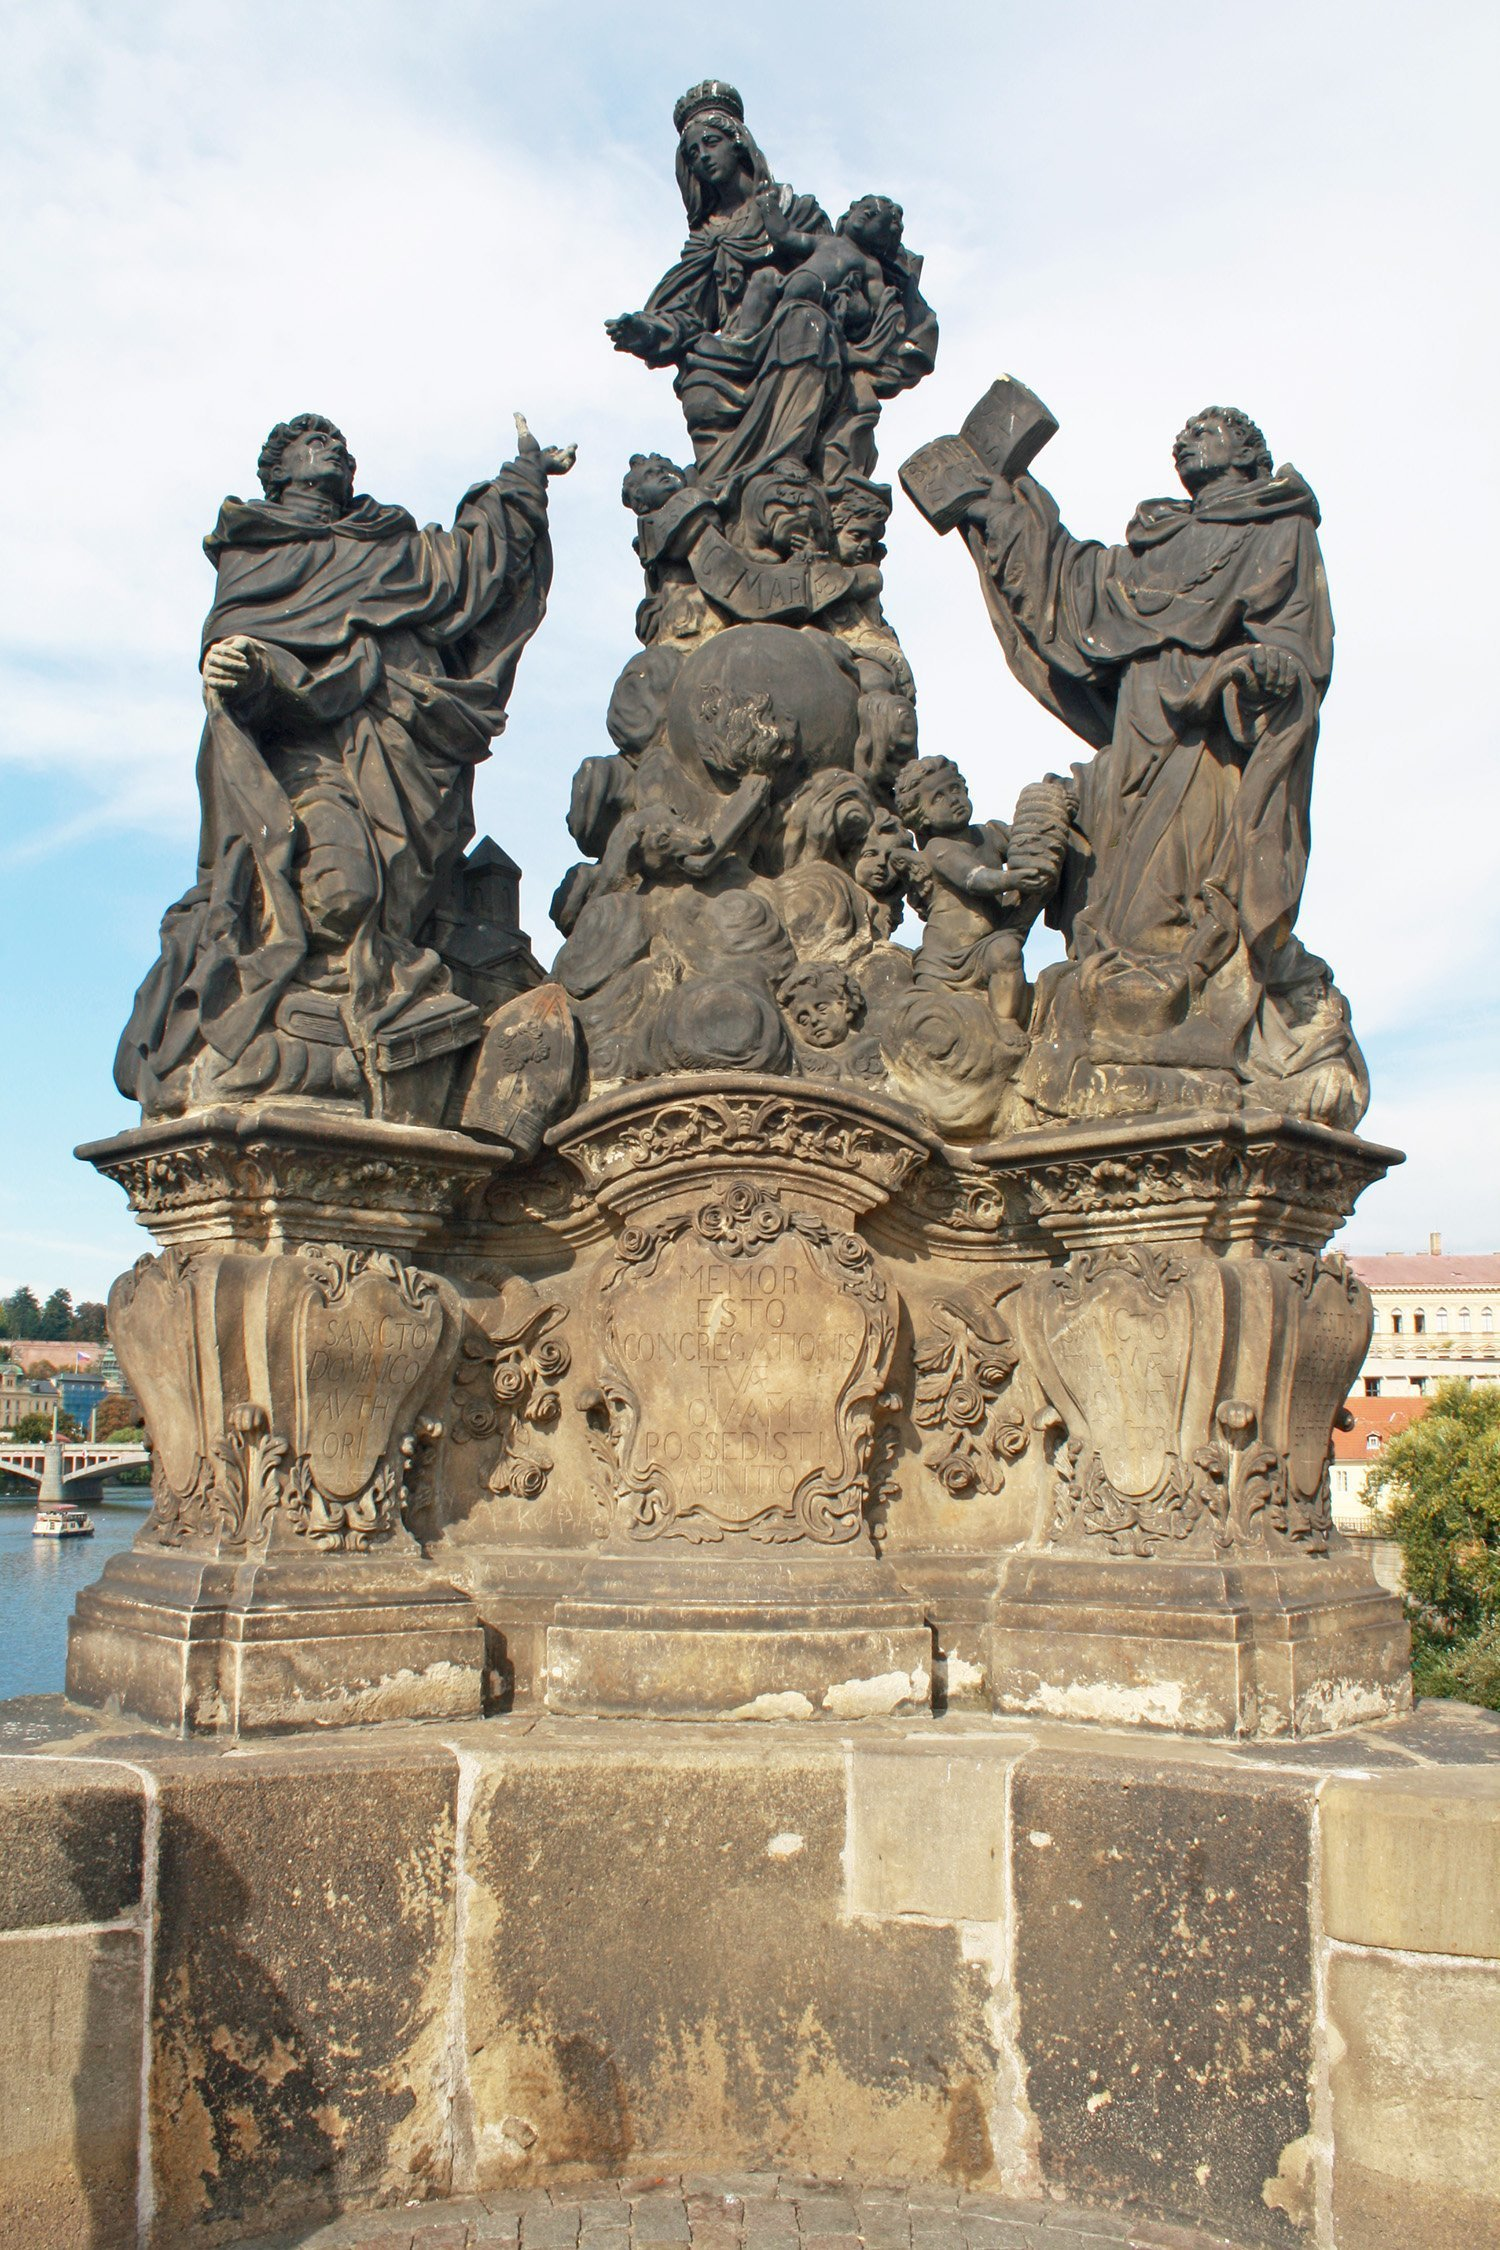 Statue of the Madonna, St Dominic and Thomas Aquinas on Charles Bridge, Prague